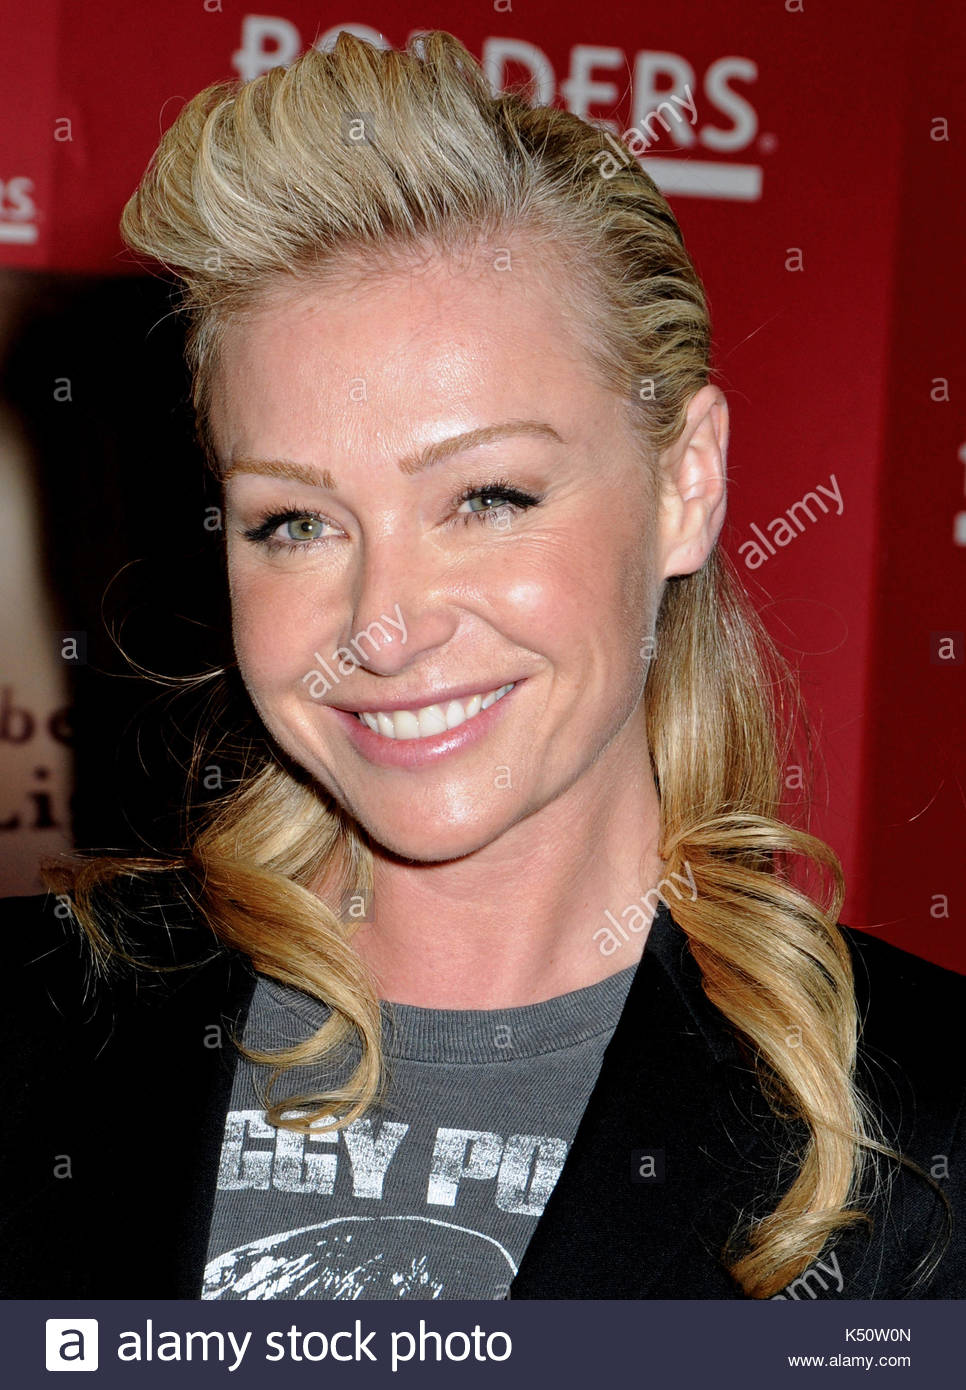 Portia De Rossi. Portia De Rossi Book Signing At Borders For